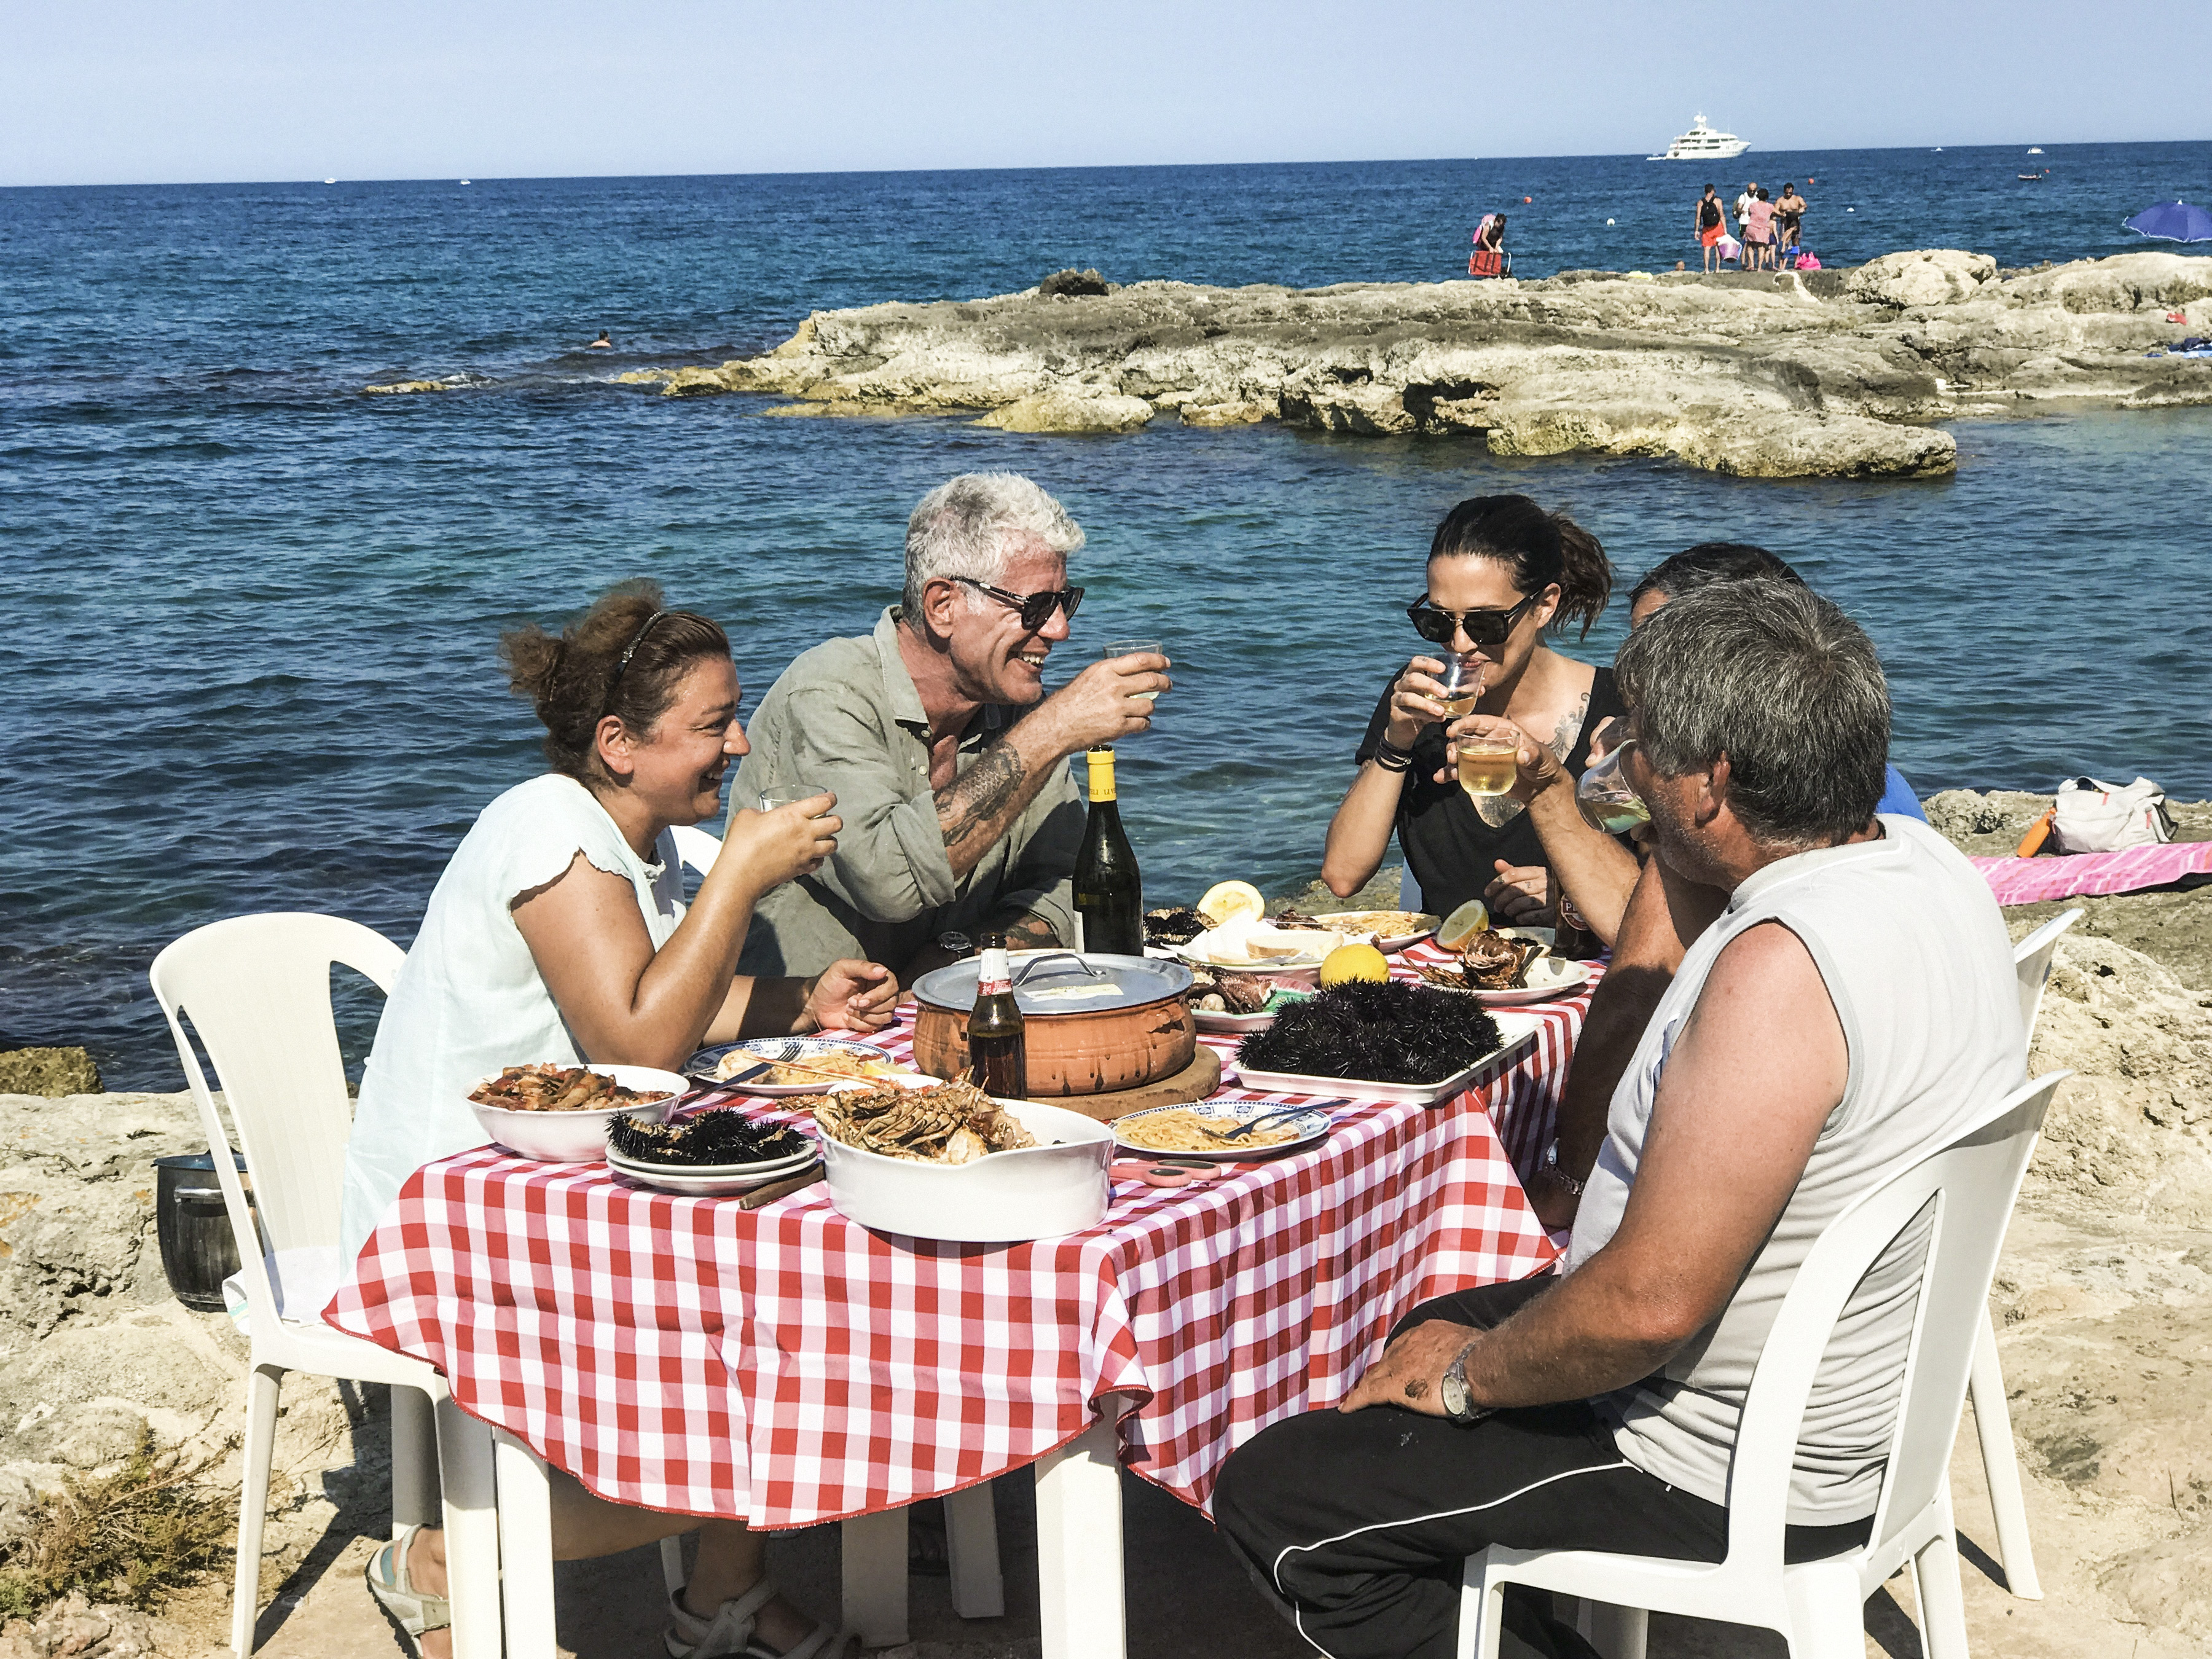 Anthony Bourdain and friends dine by the sea in southern Italy.